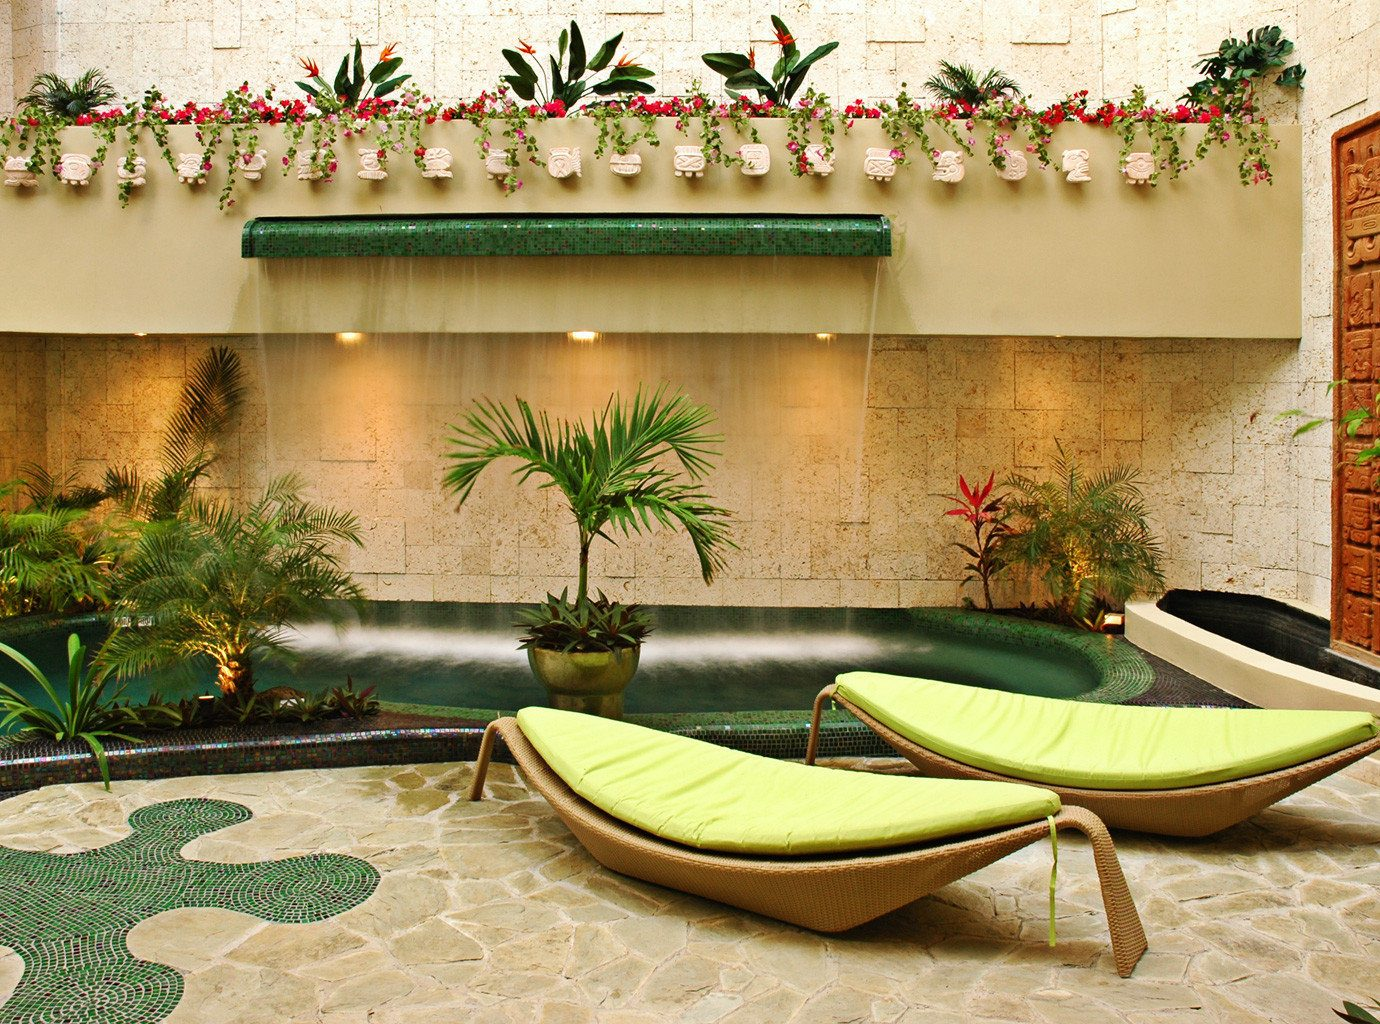 Grounds green property backyard Courtyard home living room Villa swimming pool flower plant